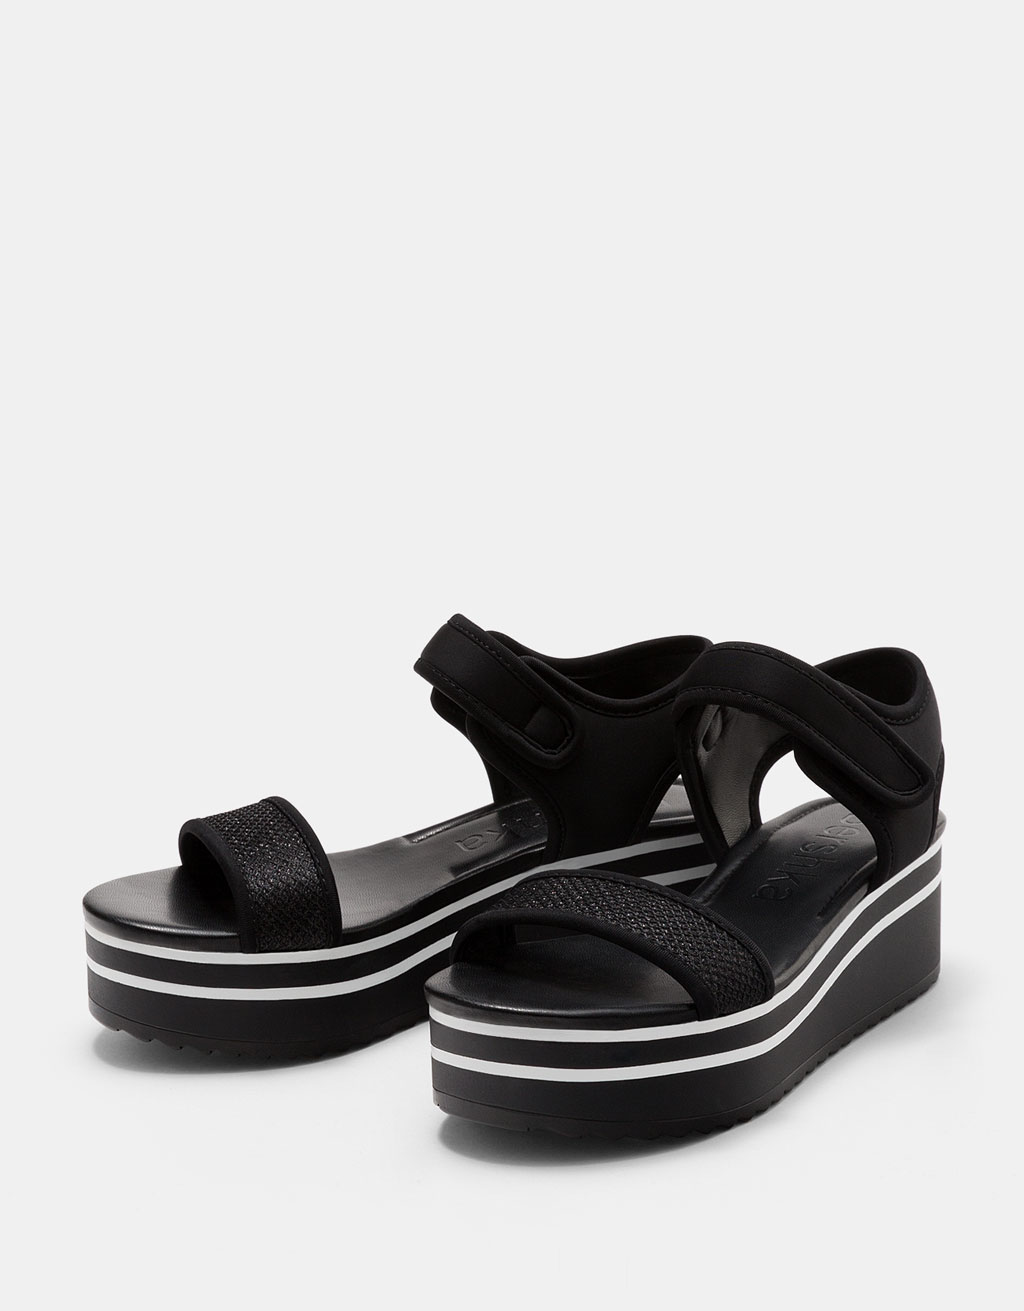 Platform sandals with shiny straps